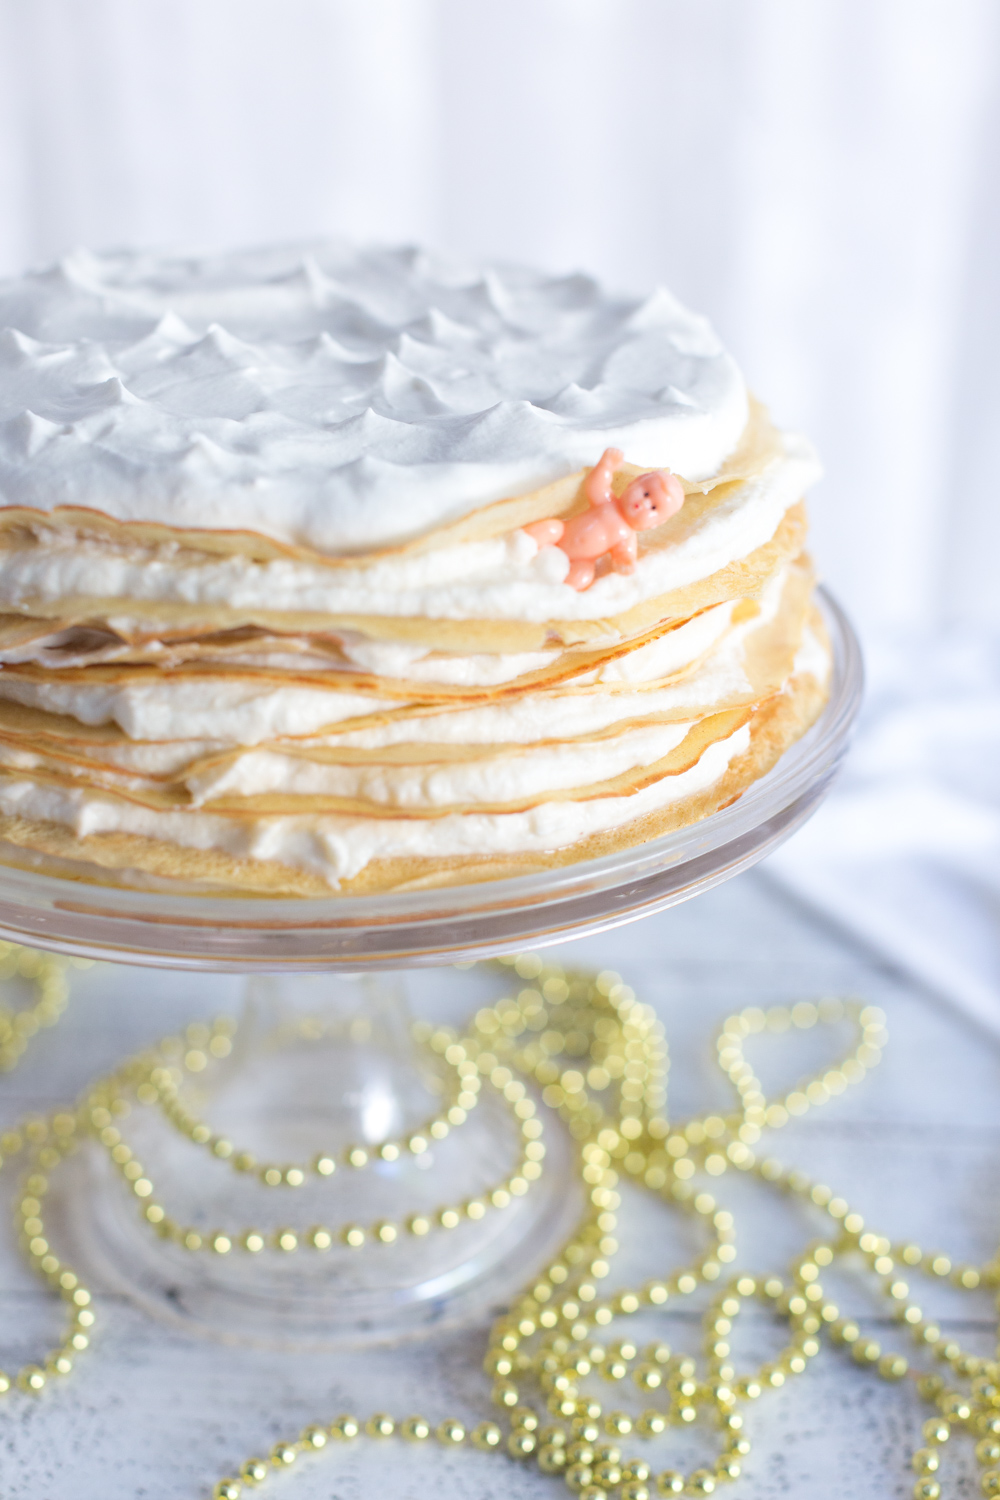 Layers of Crepe King Cake